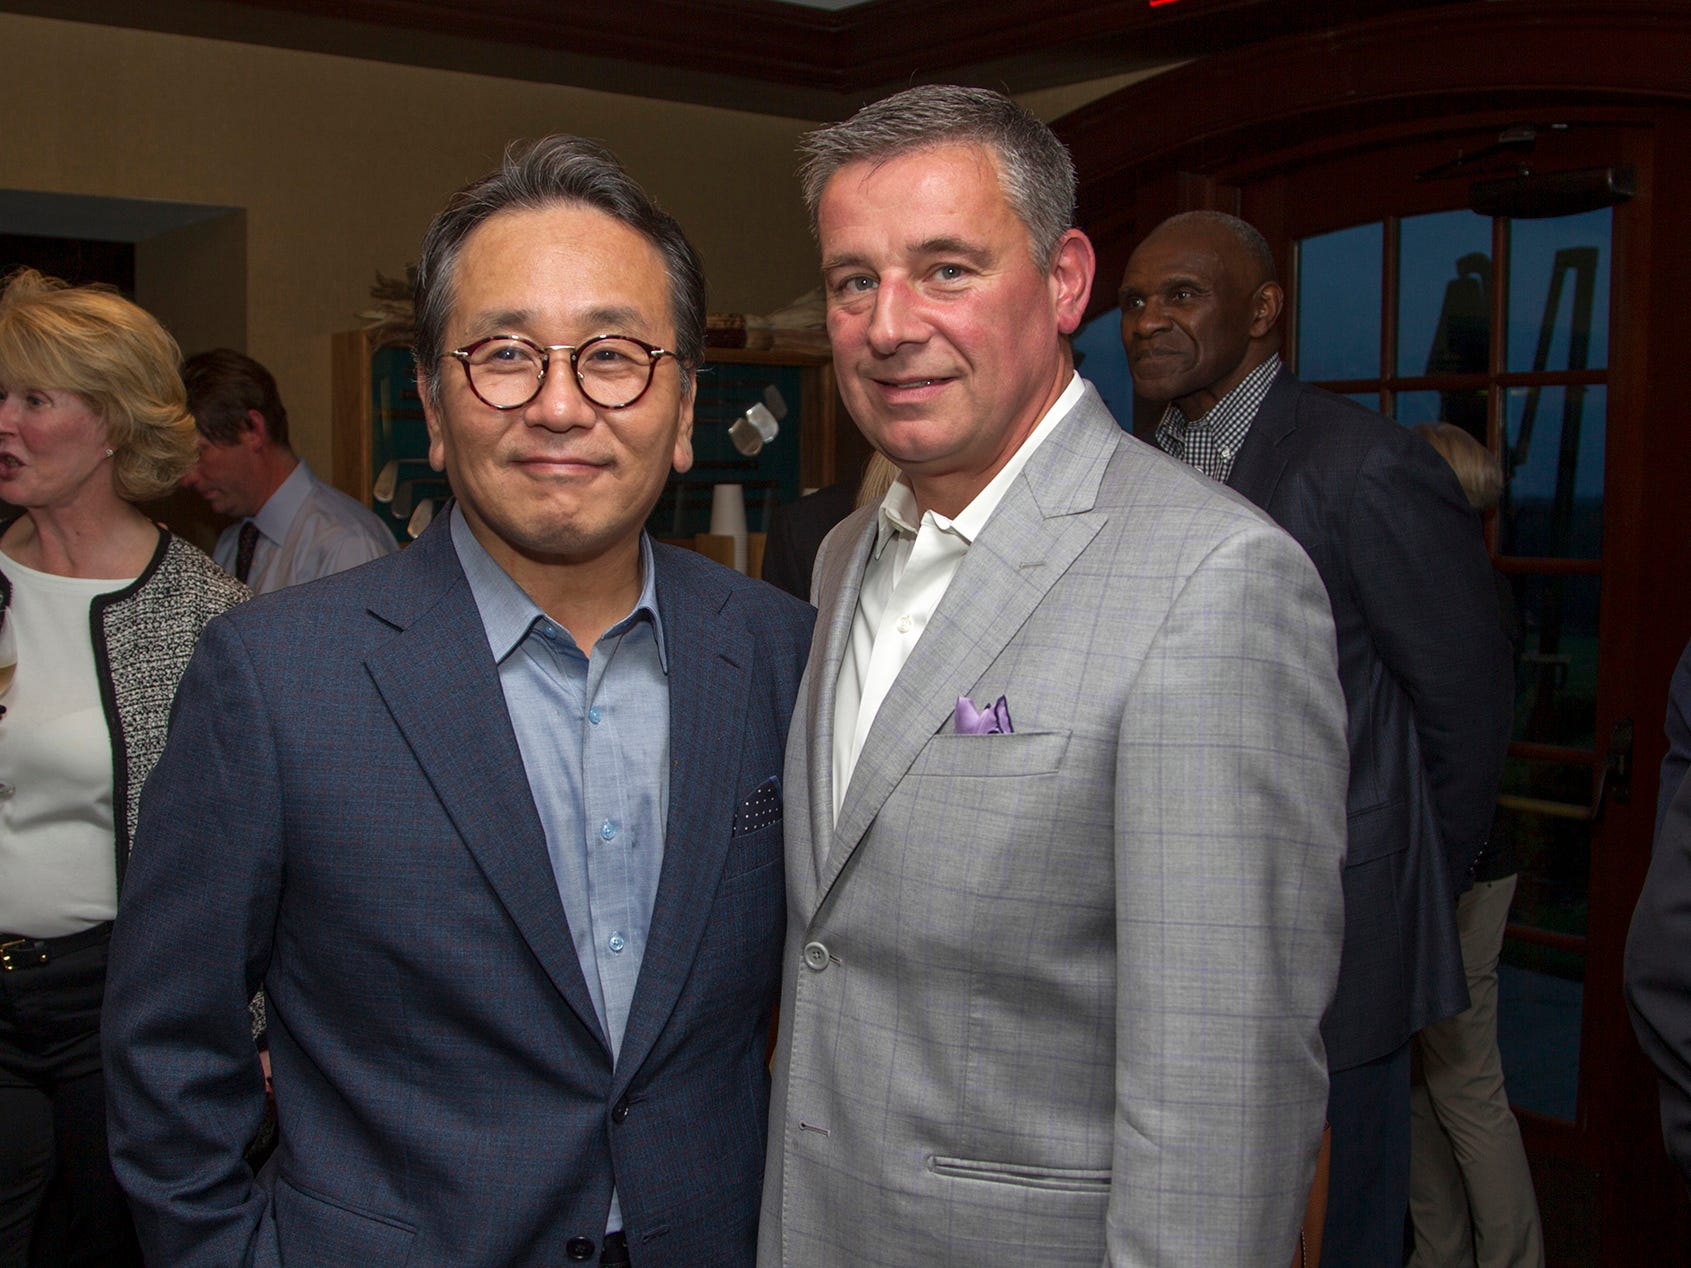 Mingi Choi, M.D.  and Dante Implicito, M.D. Seventh annual AIR Express Golf Outing honoring Dr. Dante Implicito, M.D. for his service to Hackensack University Medical Center. 10/16/2018